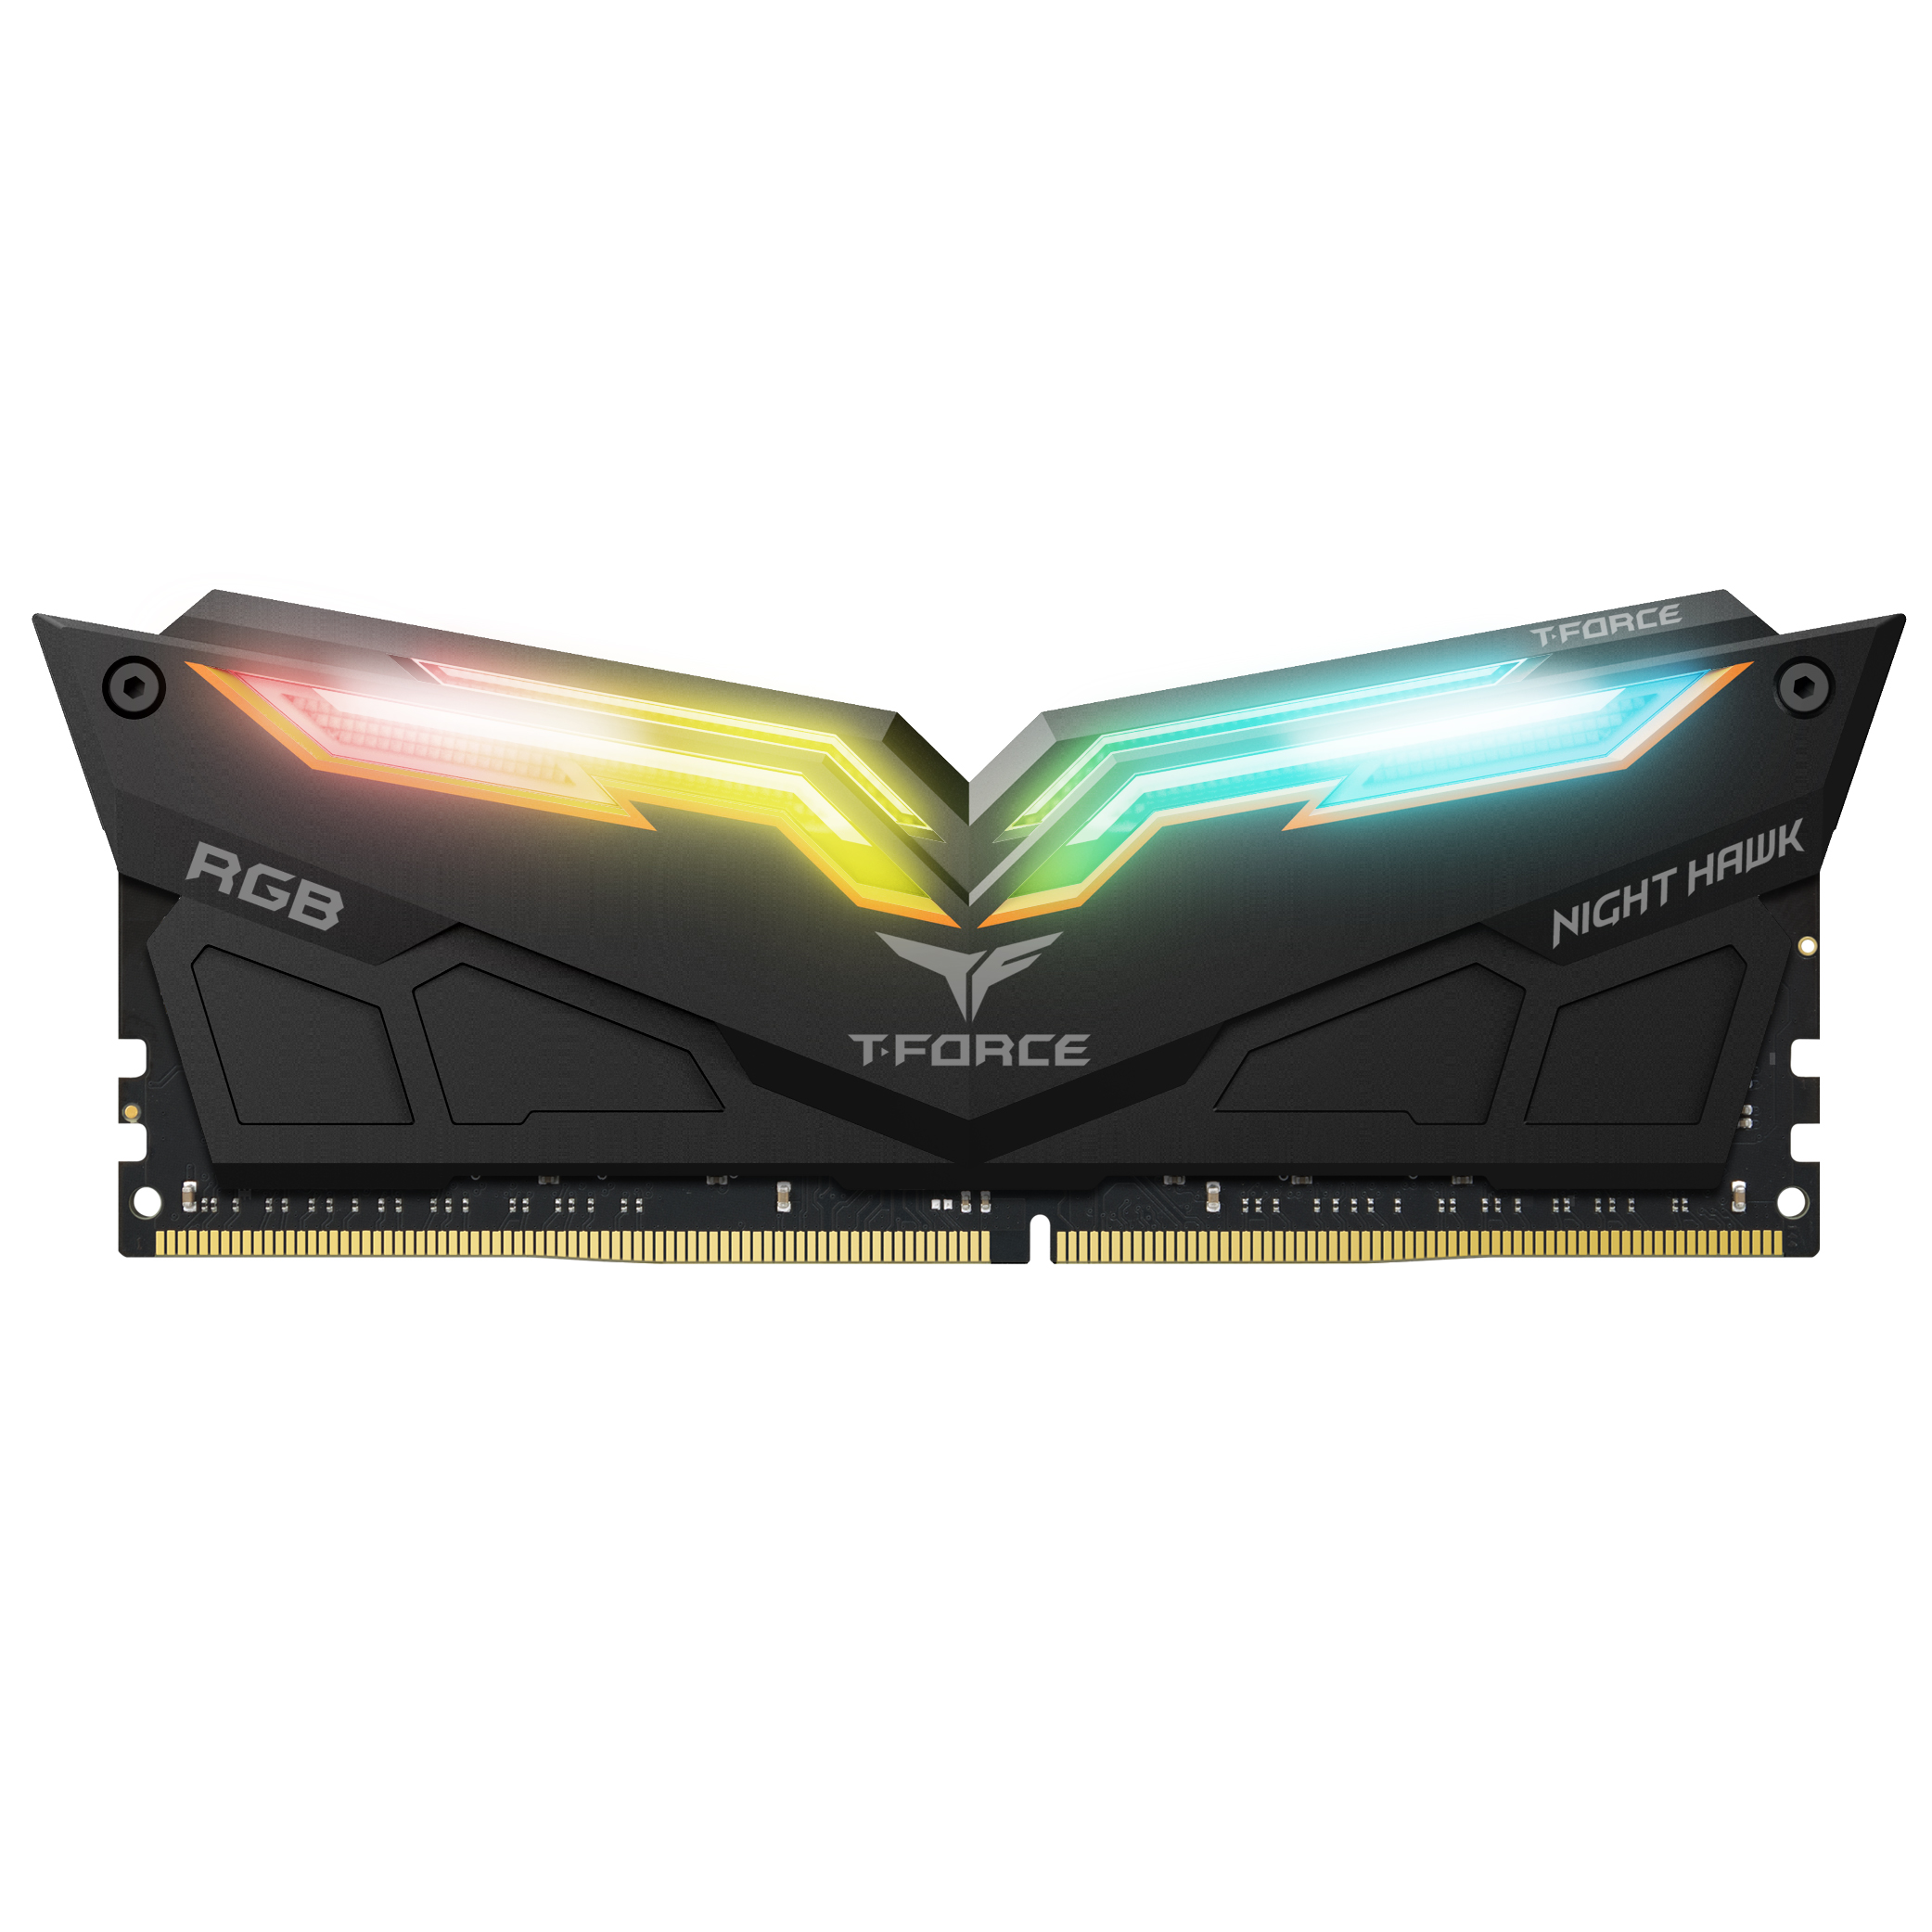 NIGHT HAWK RGB DDR4 桌上型記憶